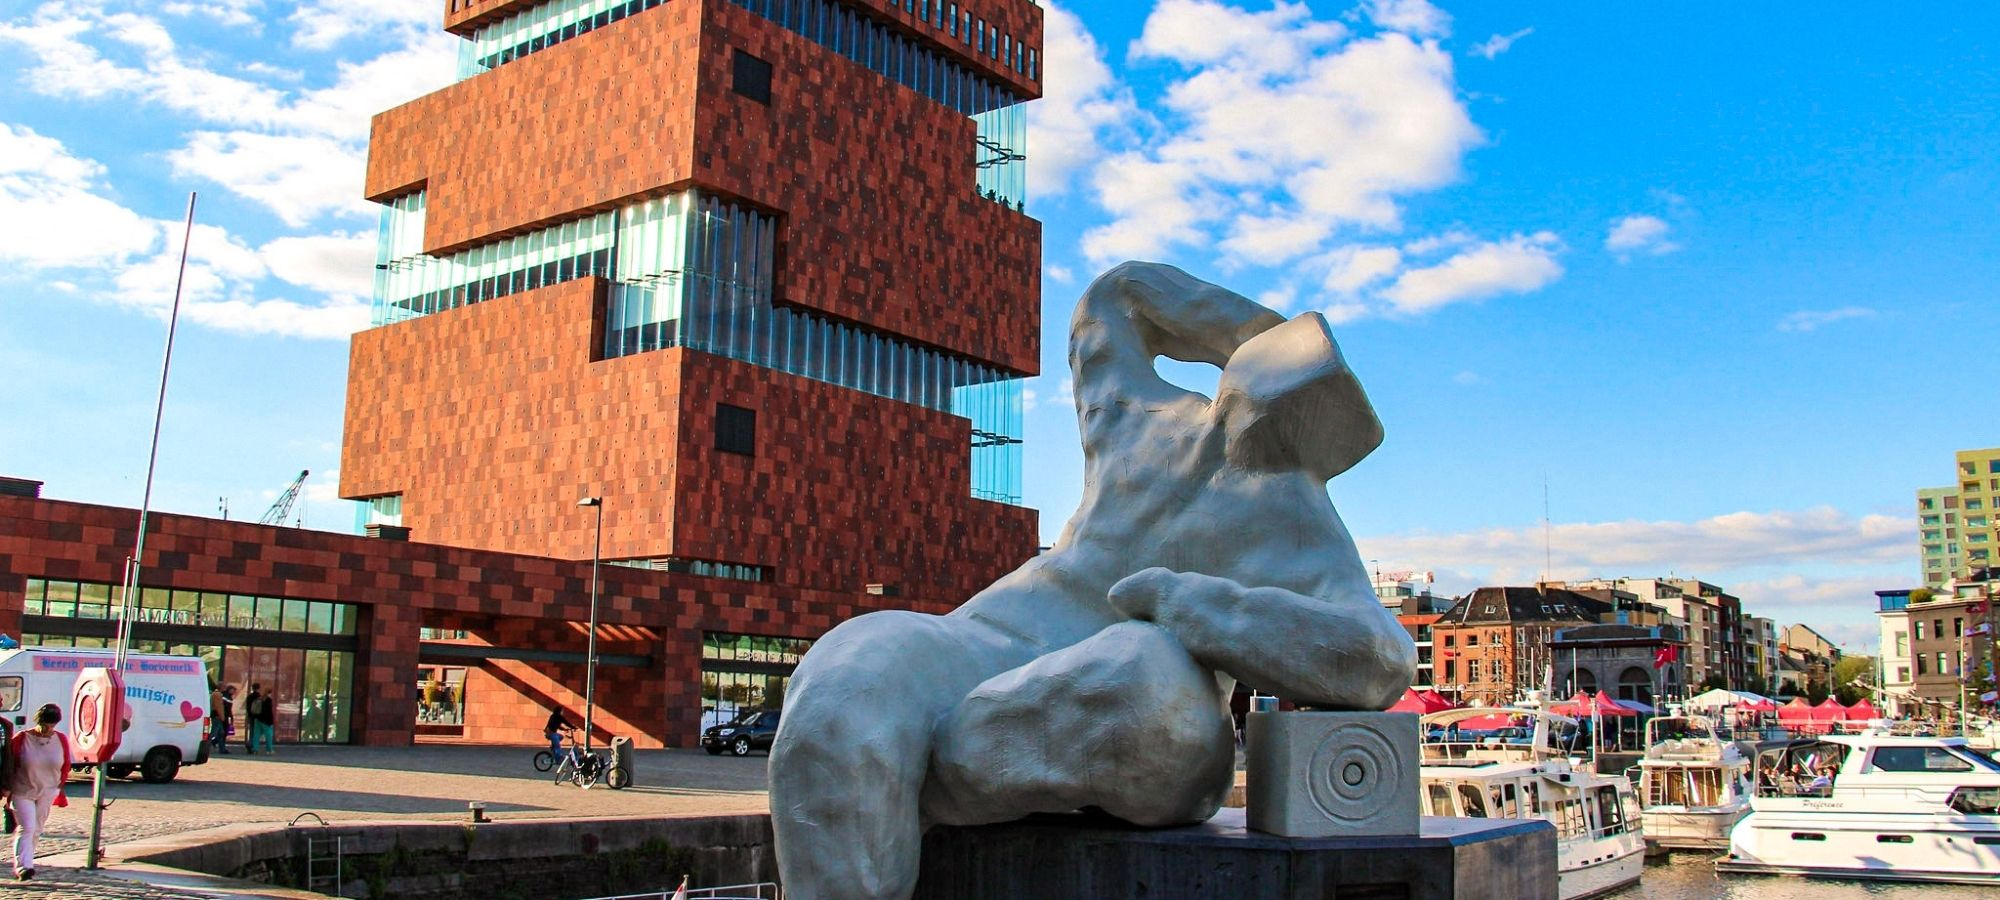 """""""The Antwerp Whisperer"""" sculpture by Daisy Boman of a white human figure with a box for a head near the dock and MAS, Antwerp"""